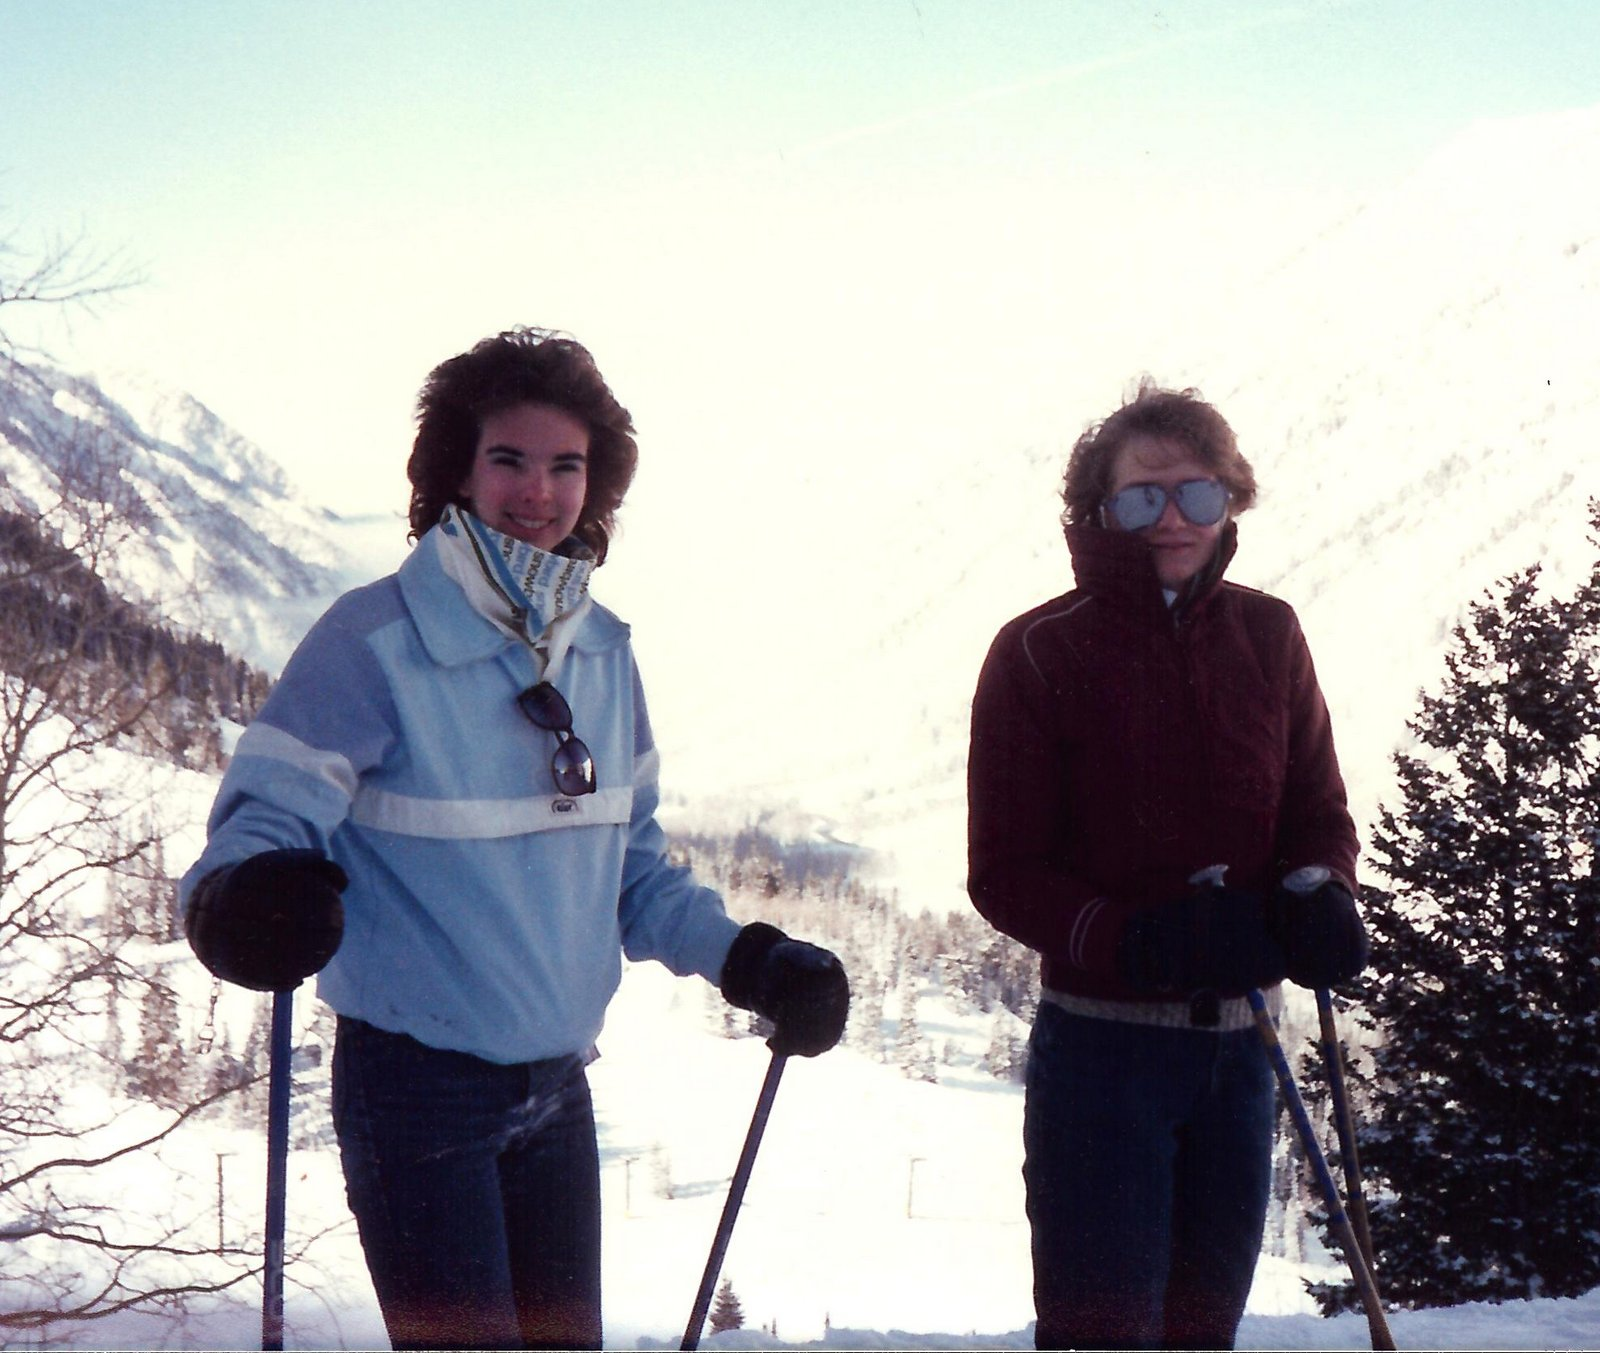 Sue and Kara skiing. Remember those big mirrored sunglasses?